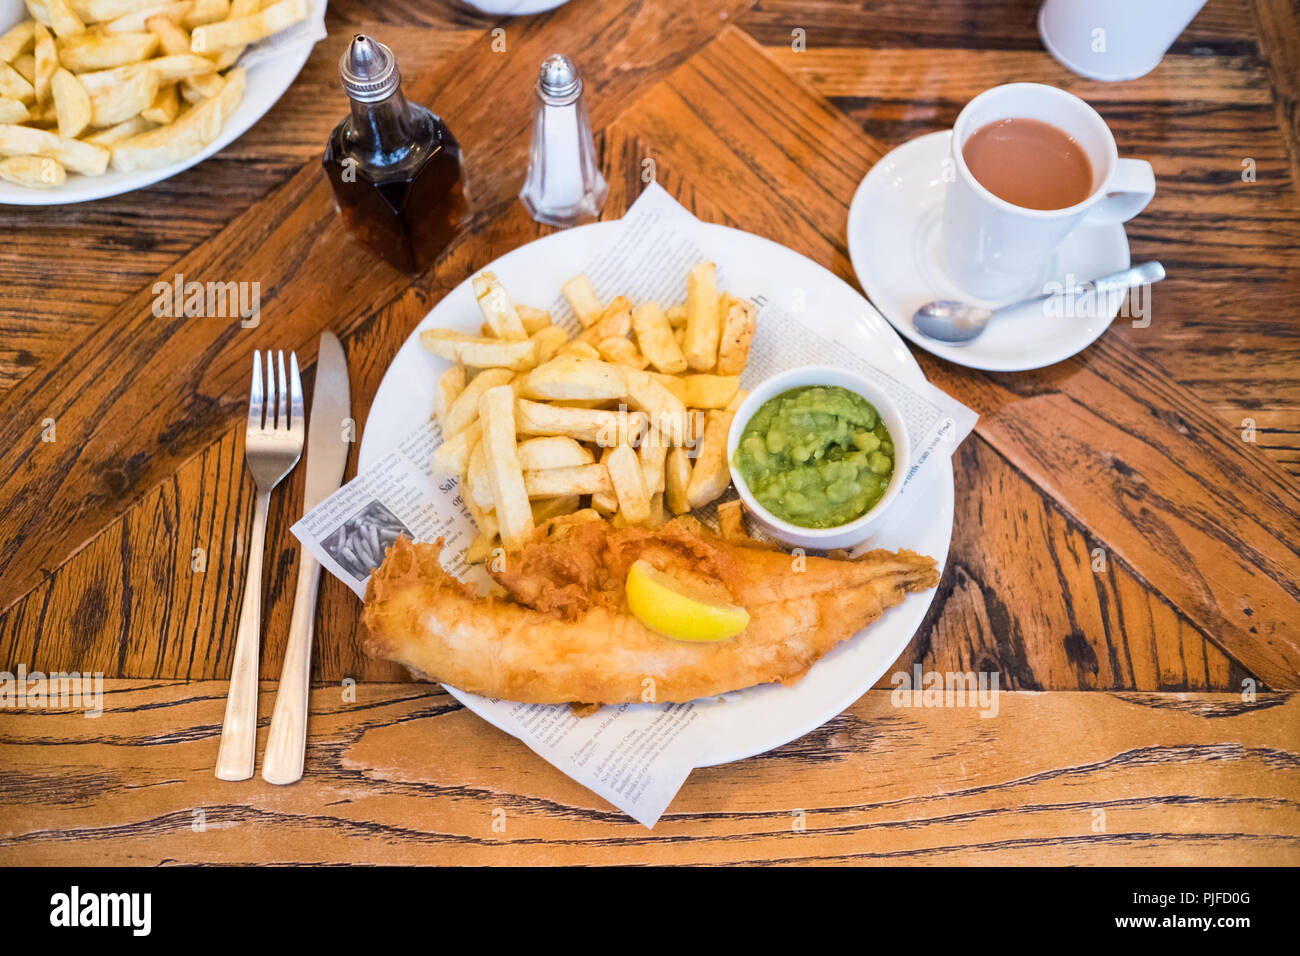 Haddock and chips with mushy peas at Lewis's Fish Restaurant, Seahouses, Northumberland, England - Stock Image